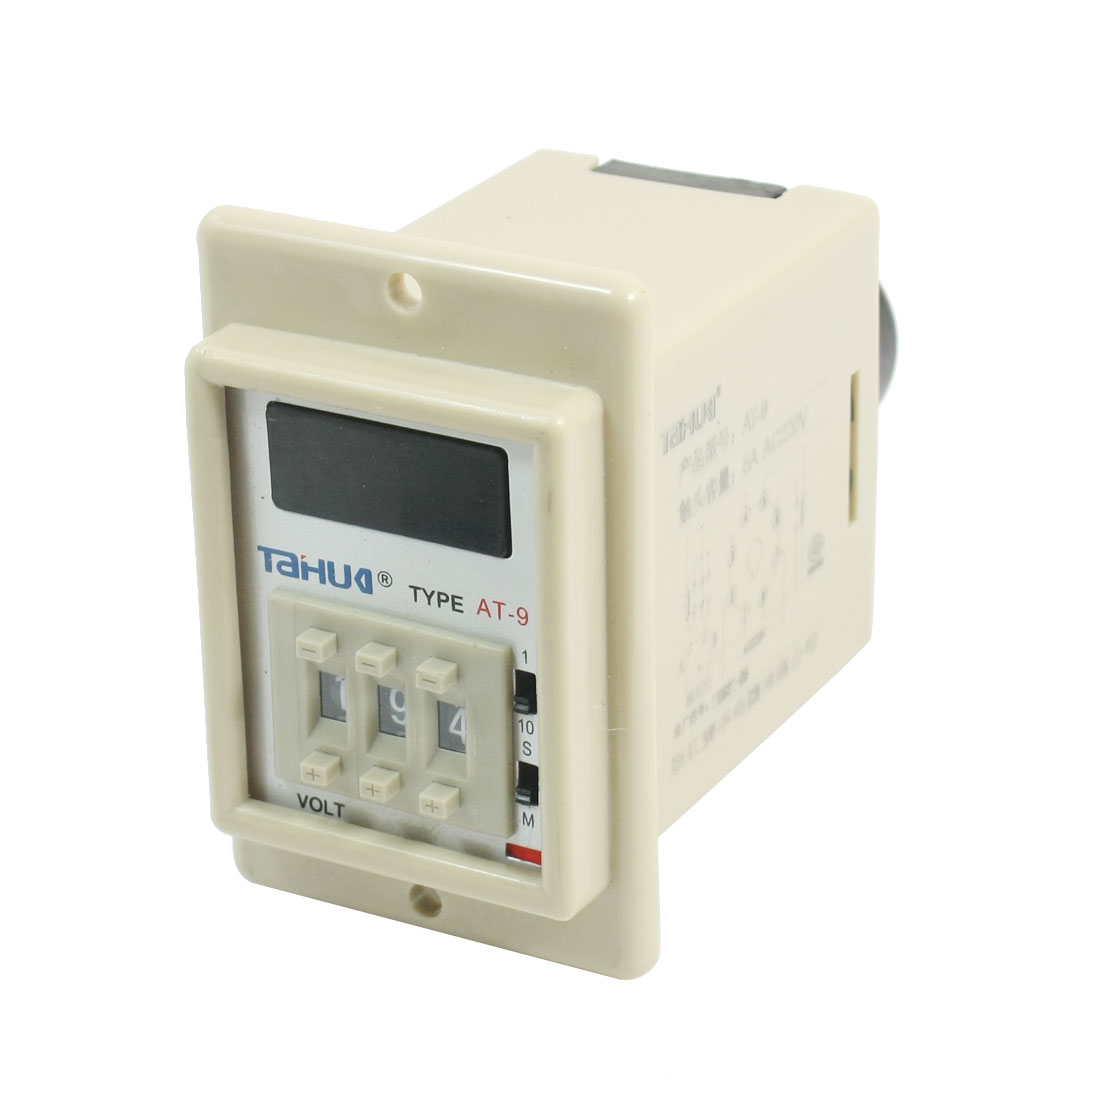 Panel Mounting DPDT 8 Pins 0.1S-999H Range Programmable Digit Time Delay Control Relay AC220V